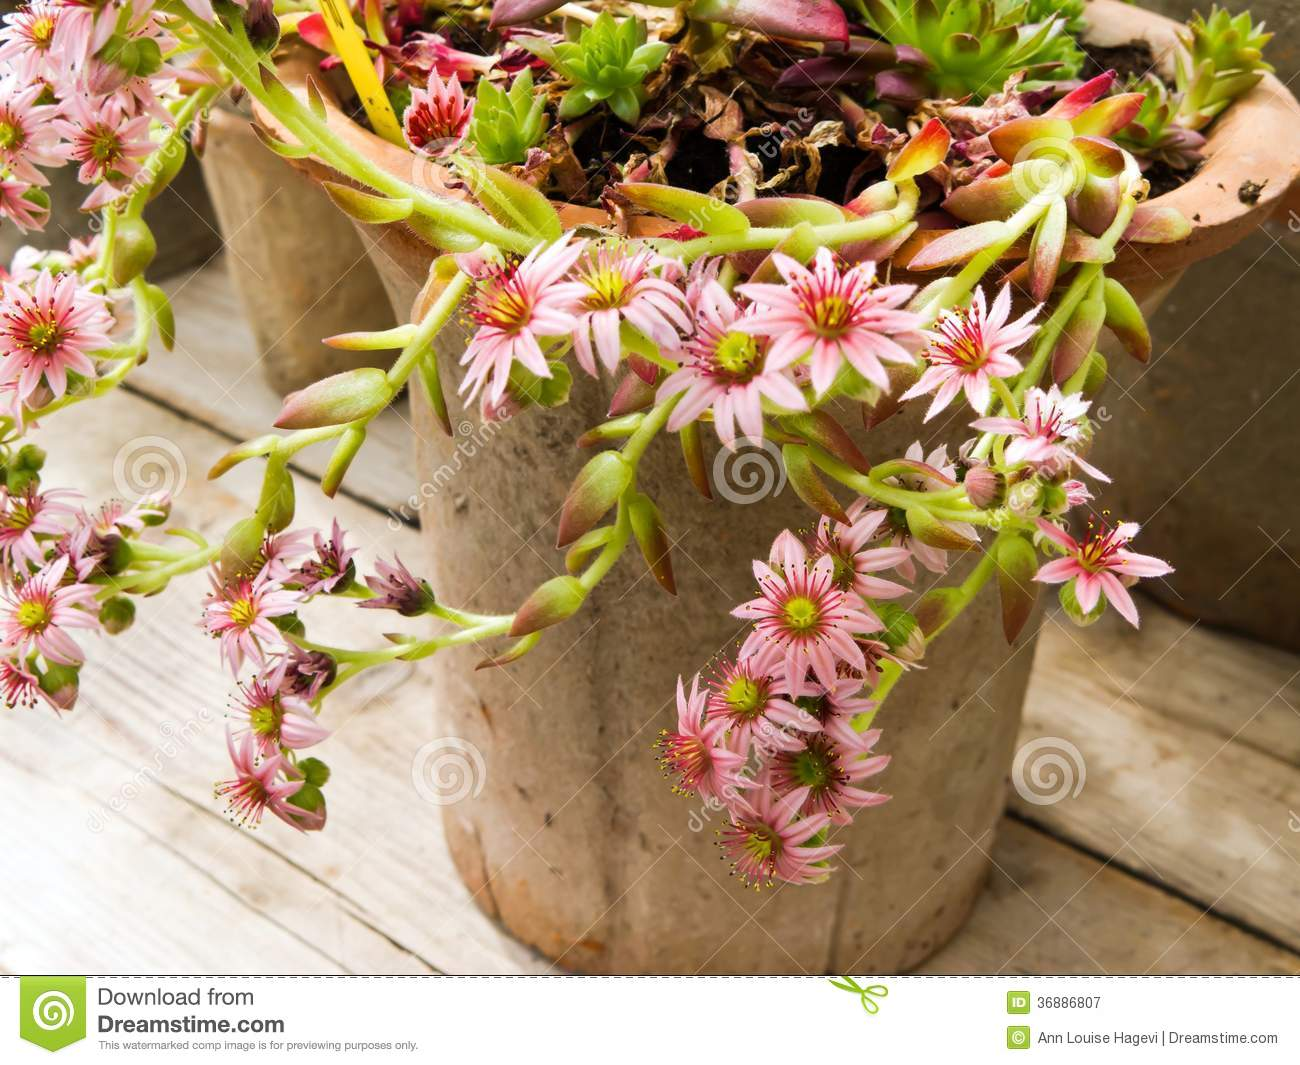 Download Pianta succulente immagine stock. Immagine di pianta - 36886807